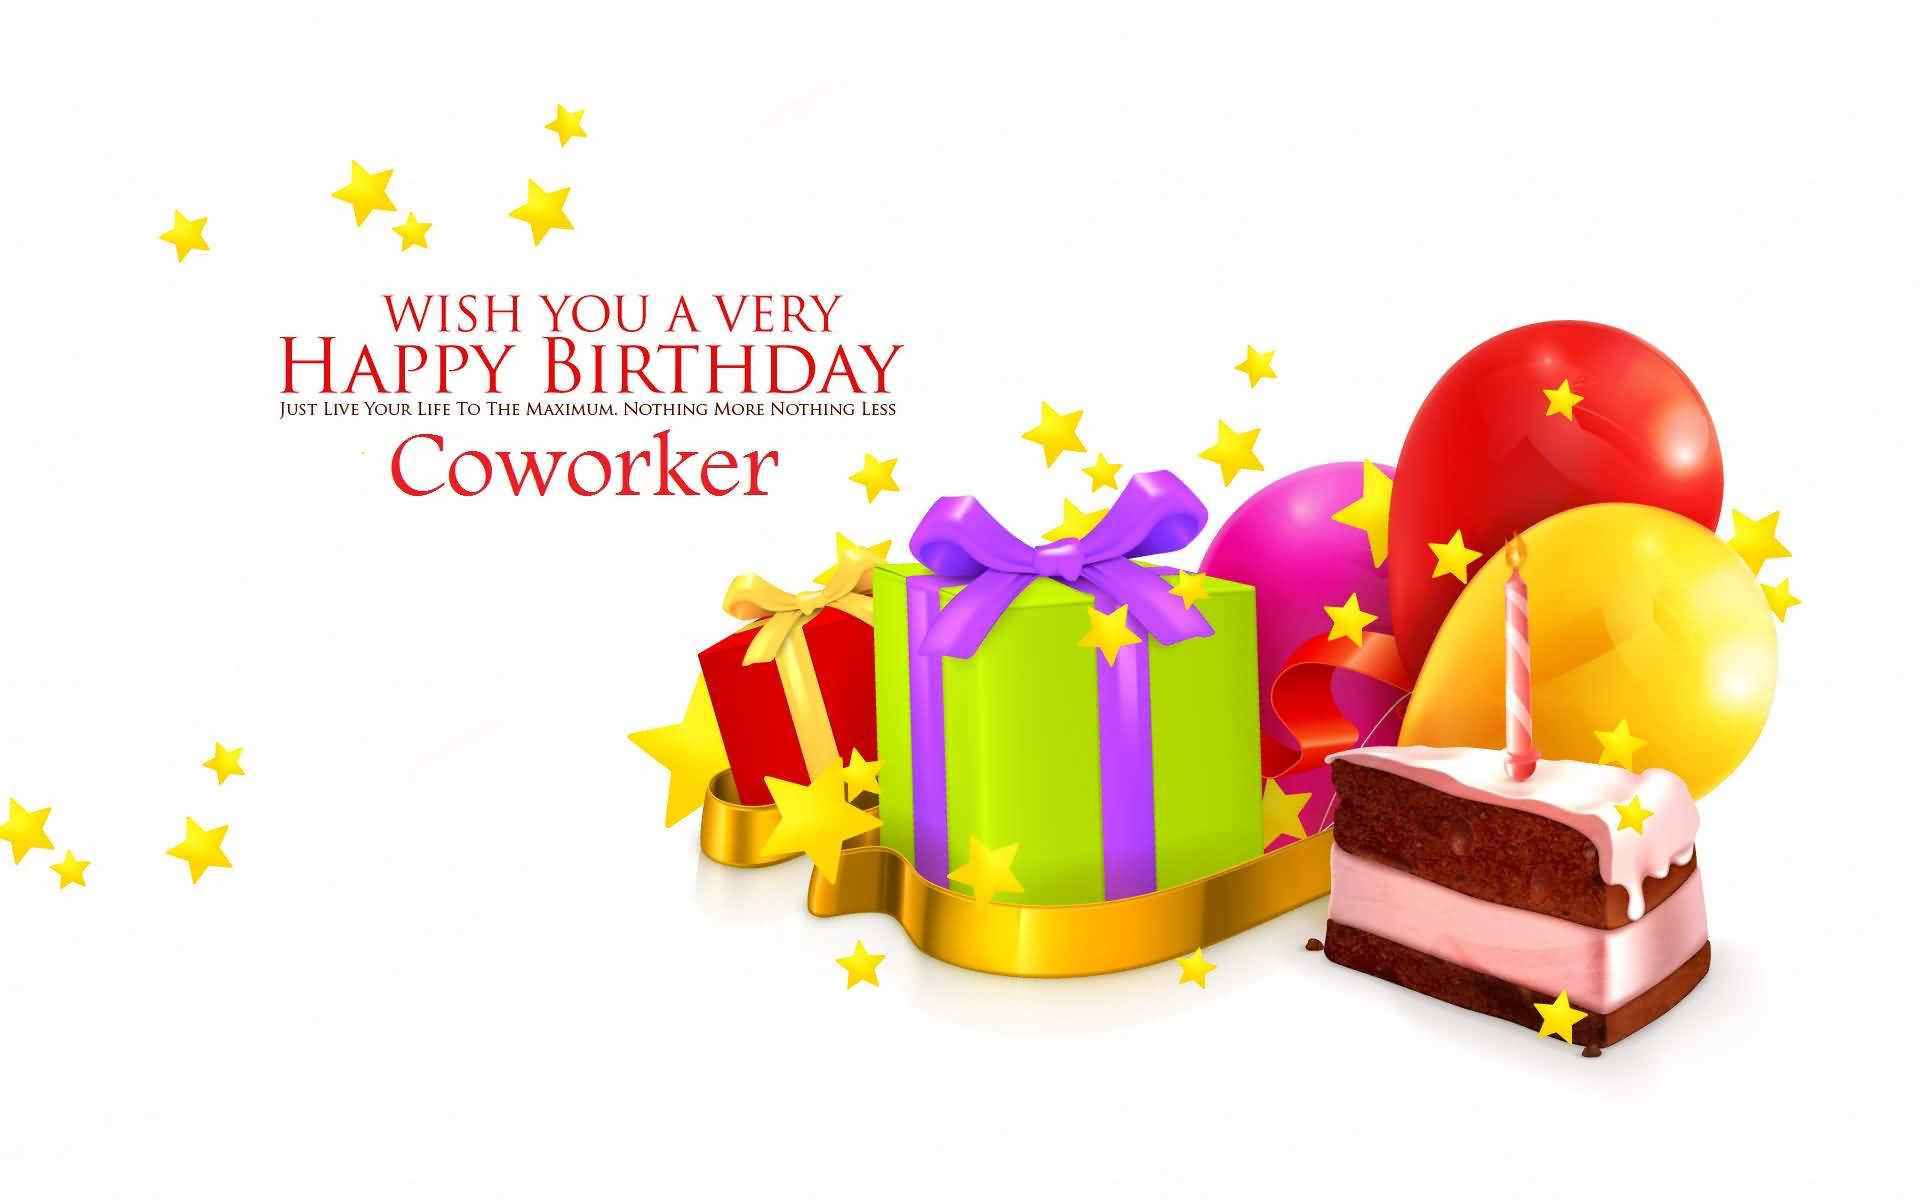 42 Nice Coworker Birthday Wishes Greetings Photos – Birthday Greetings for Coworkers